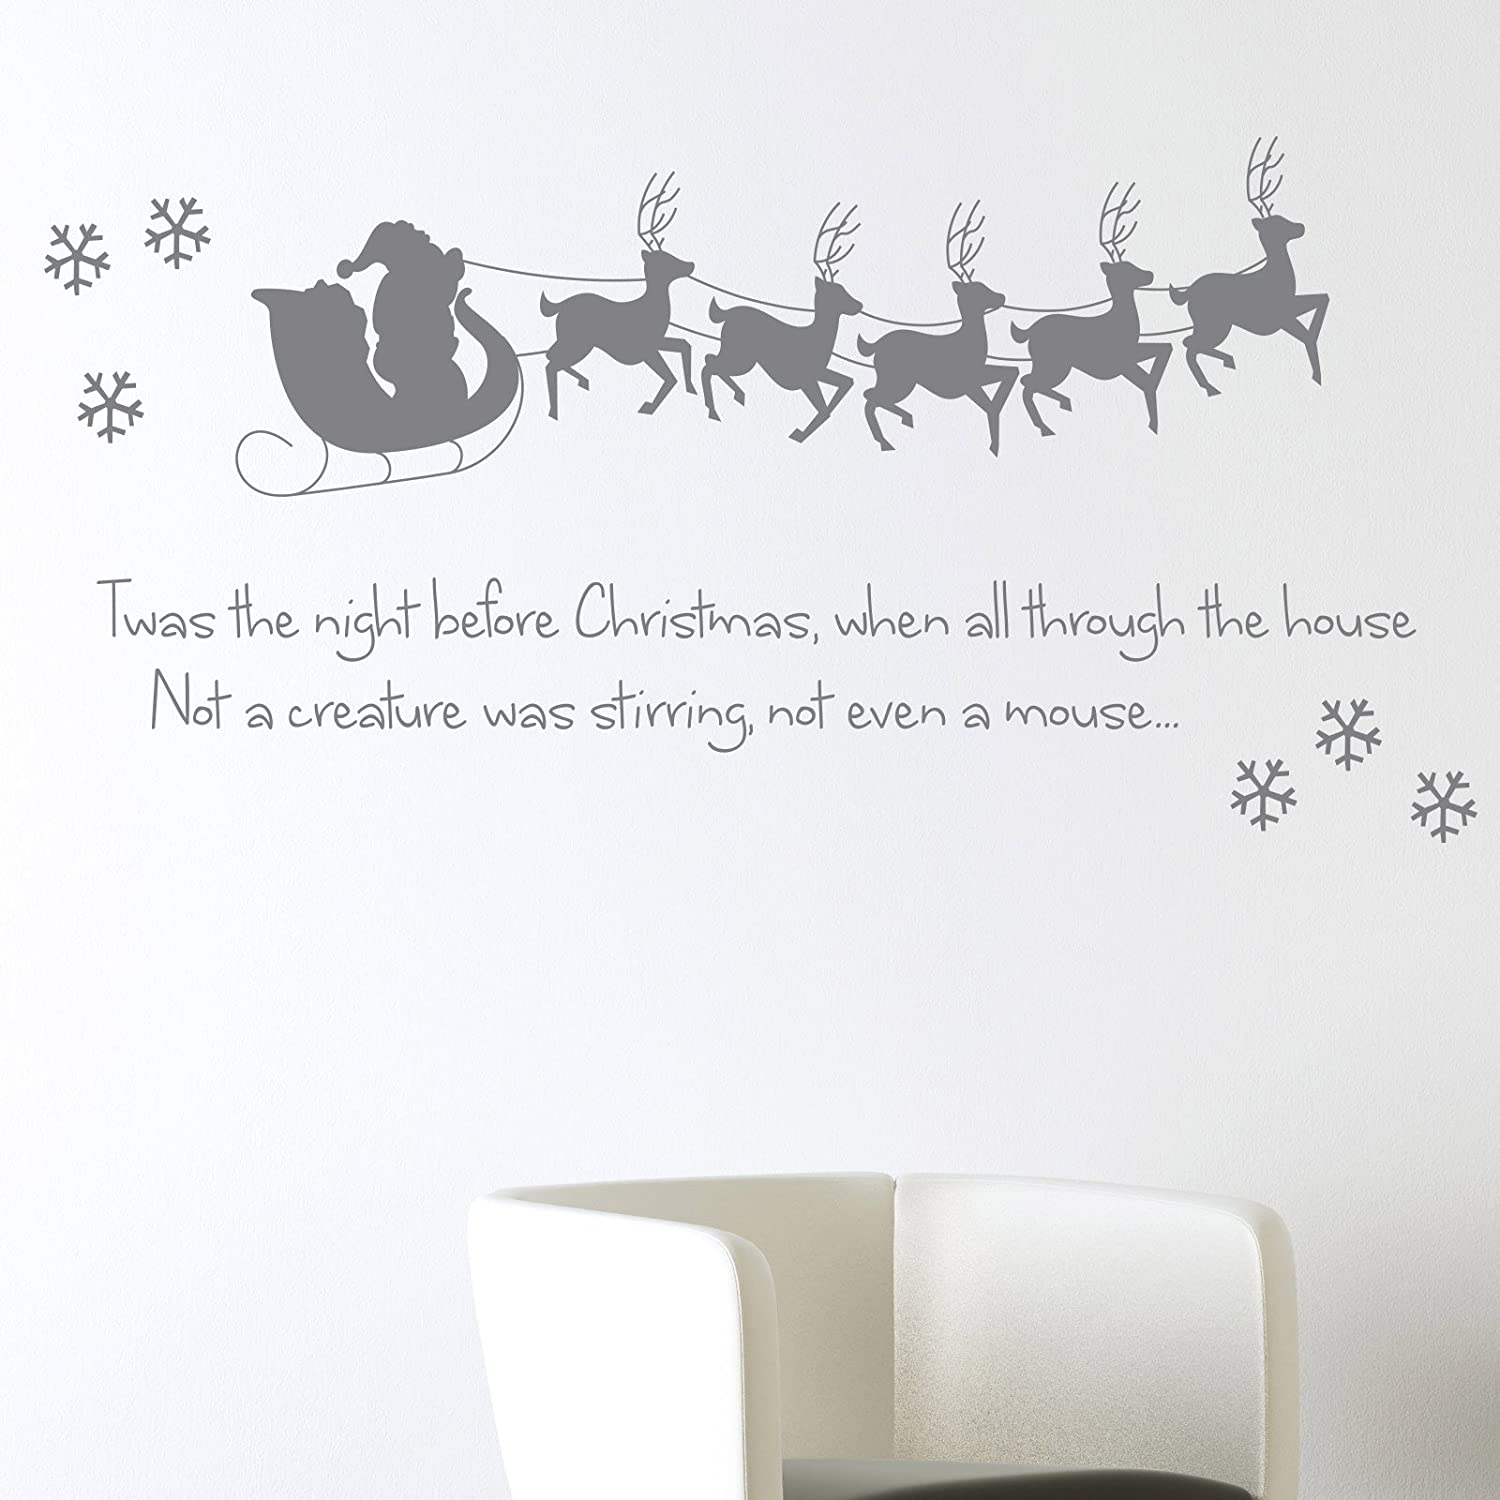 twas the night before christmas wall sticker xmas art decal decoration santa reindeer snowflake amazoncouk kitchen home